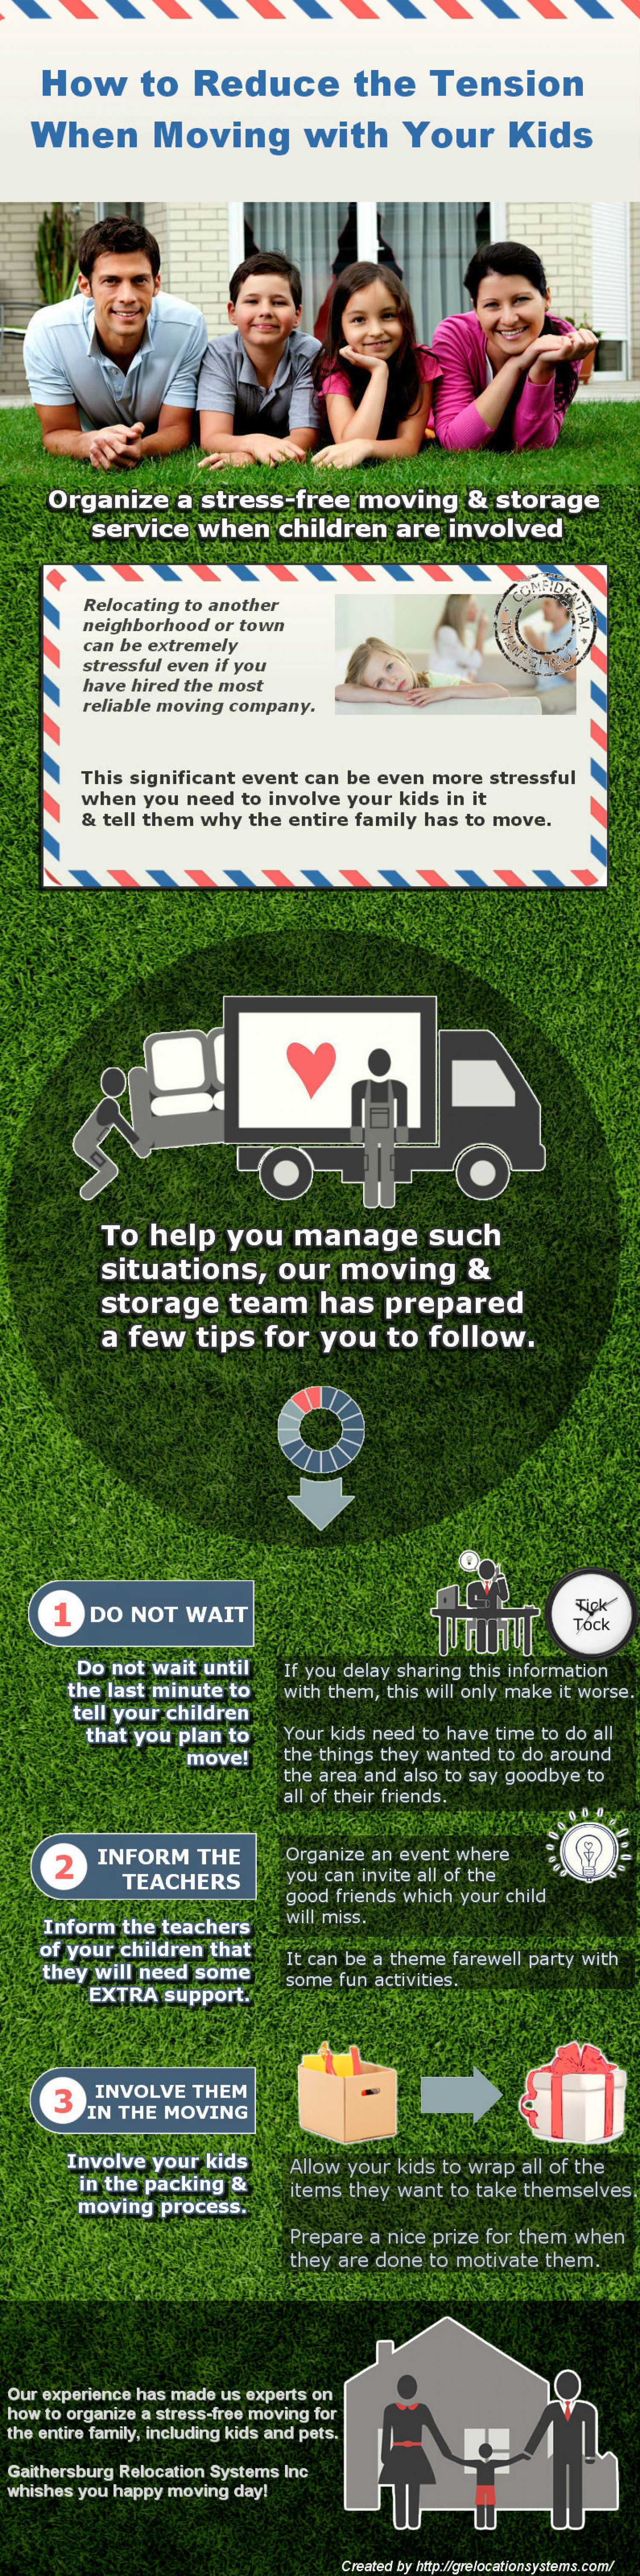 How to Reduce the Tension When Moving with Your Kids Infographic